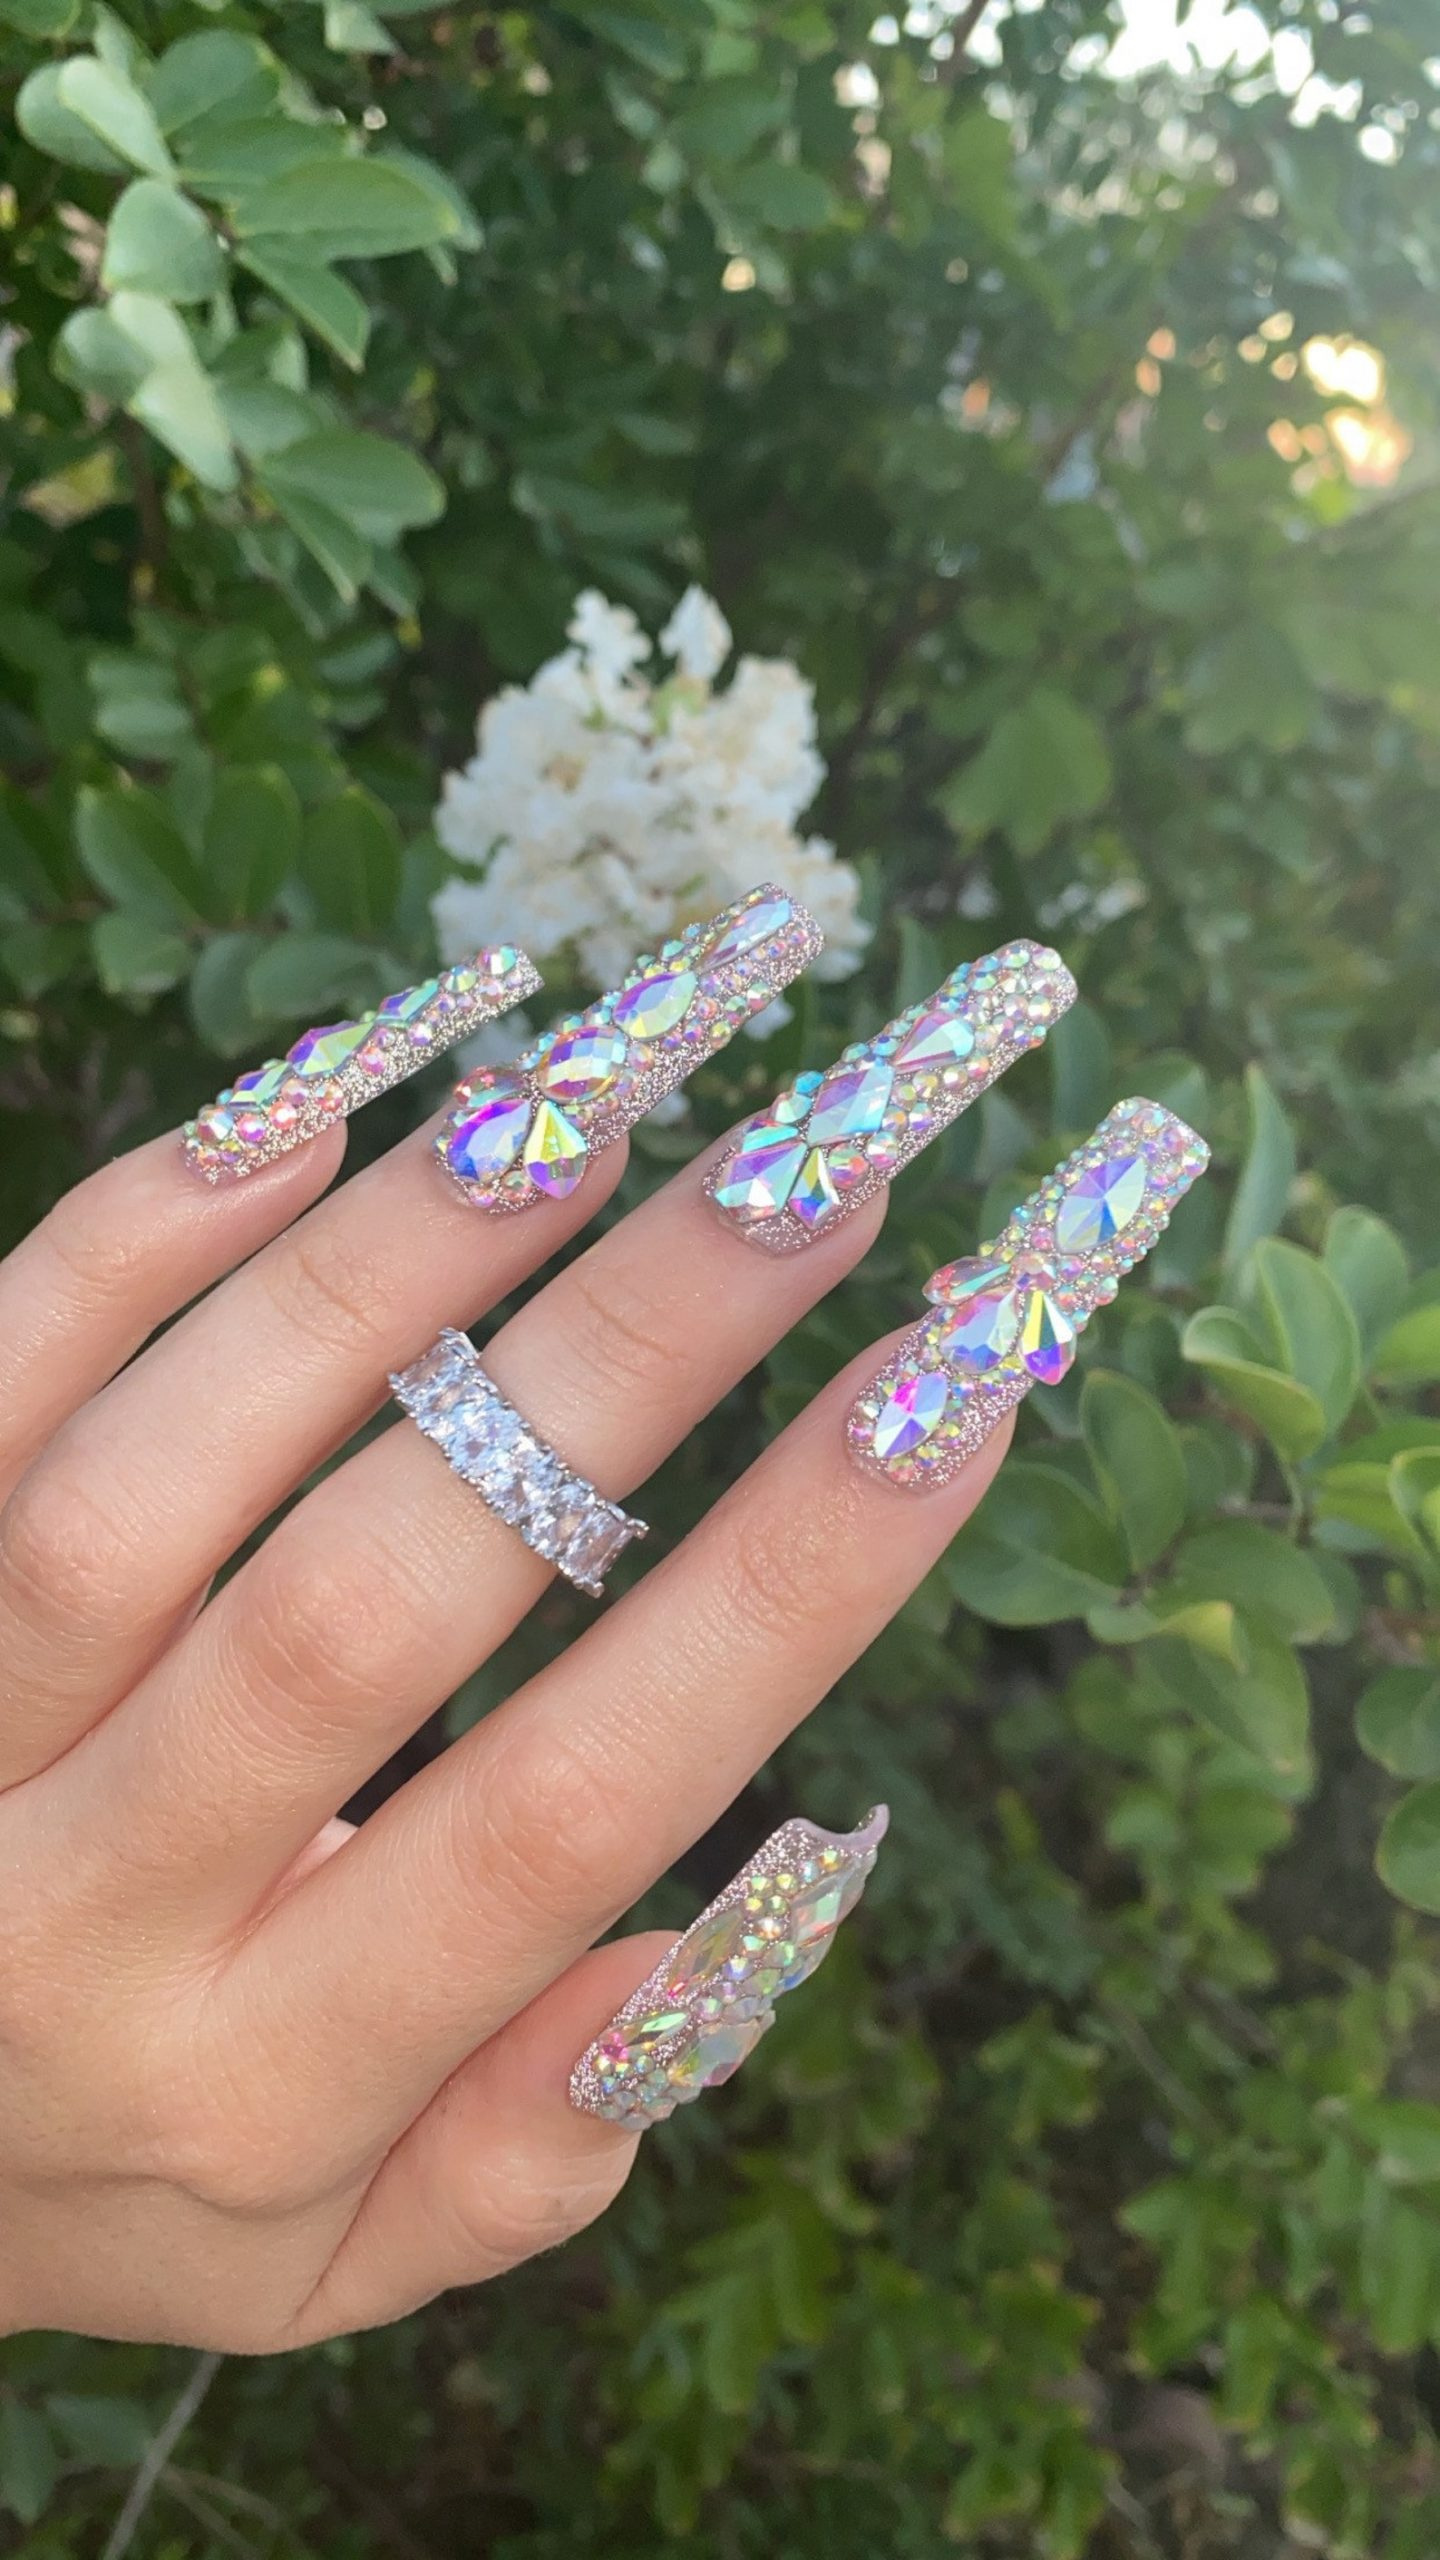 Long bling nails with crystals